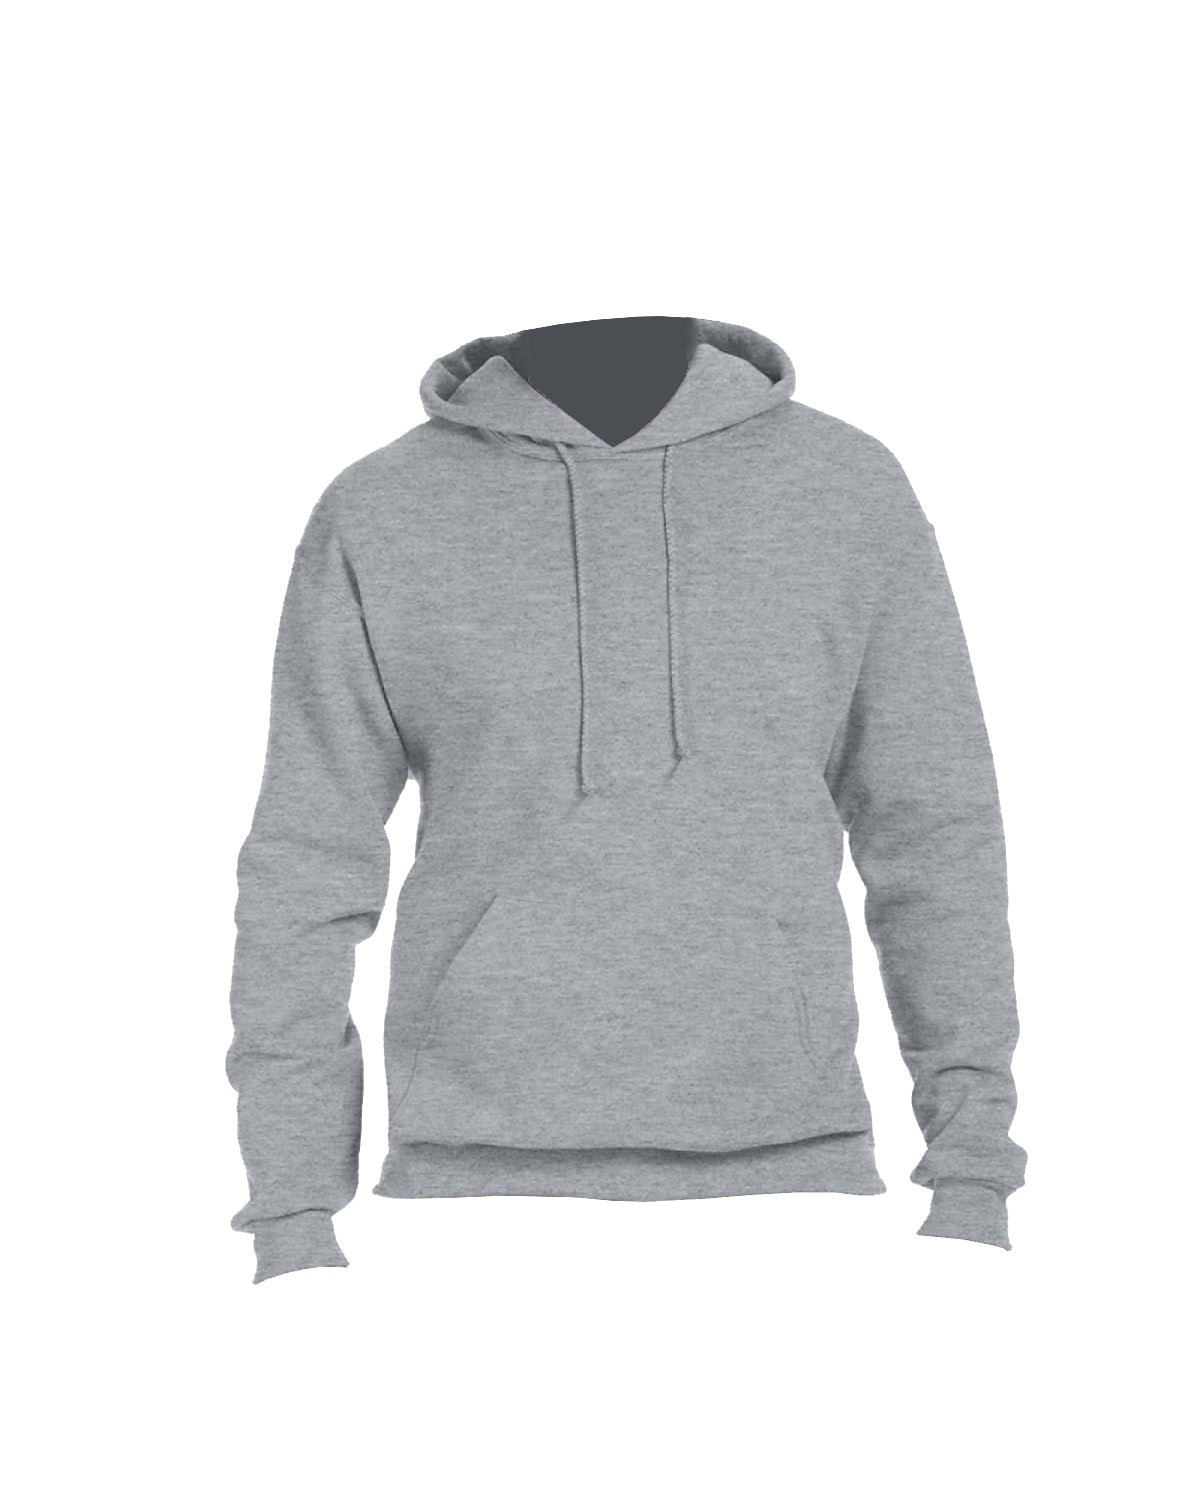 Adult grey hooded sweatshirt front